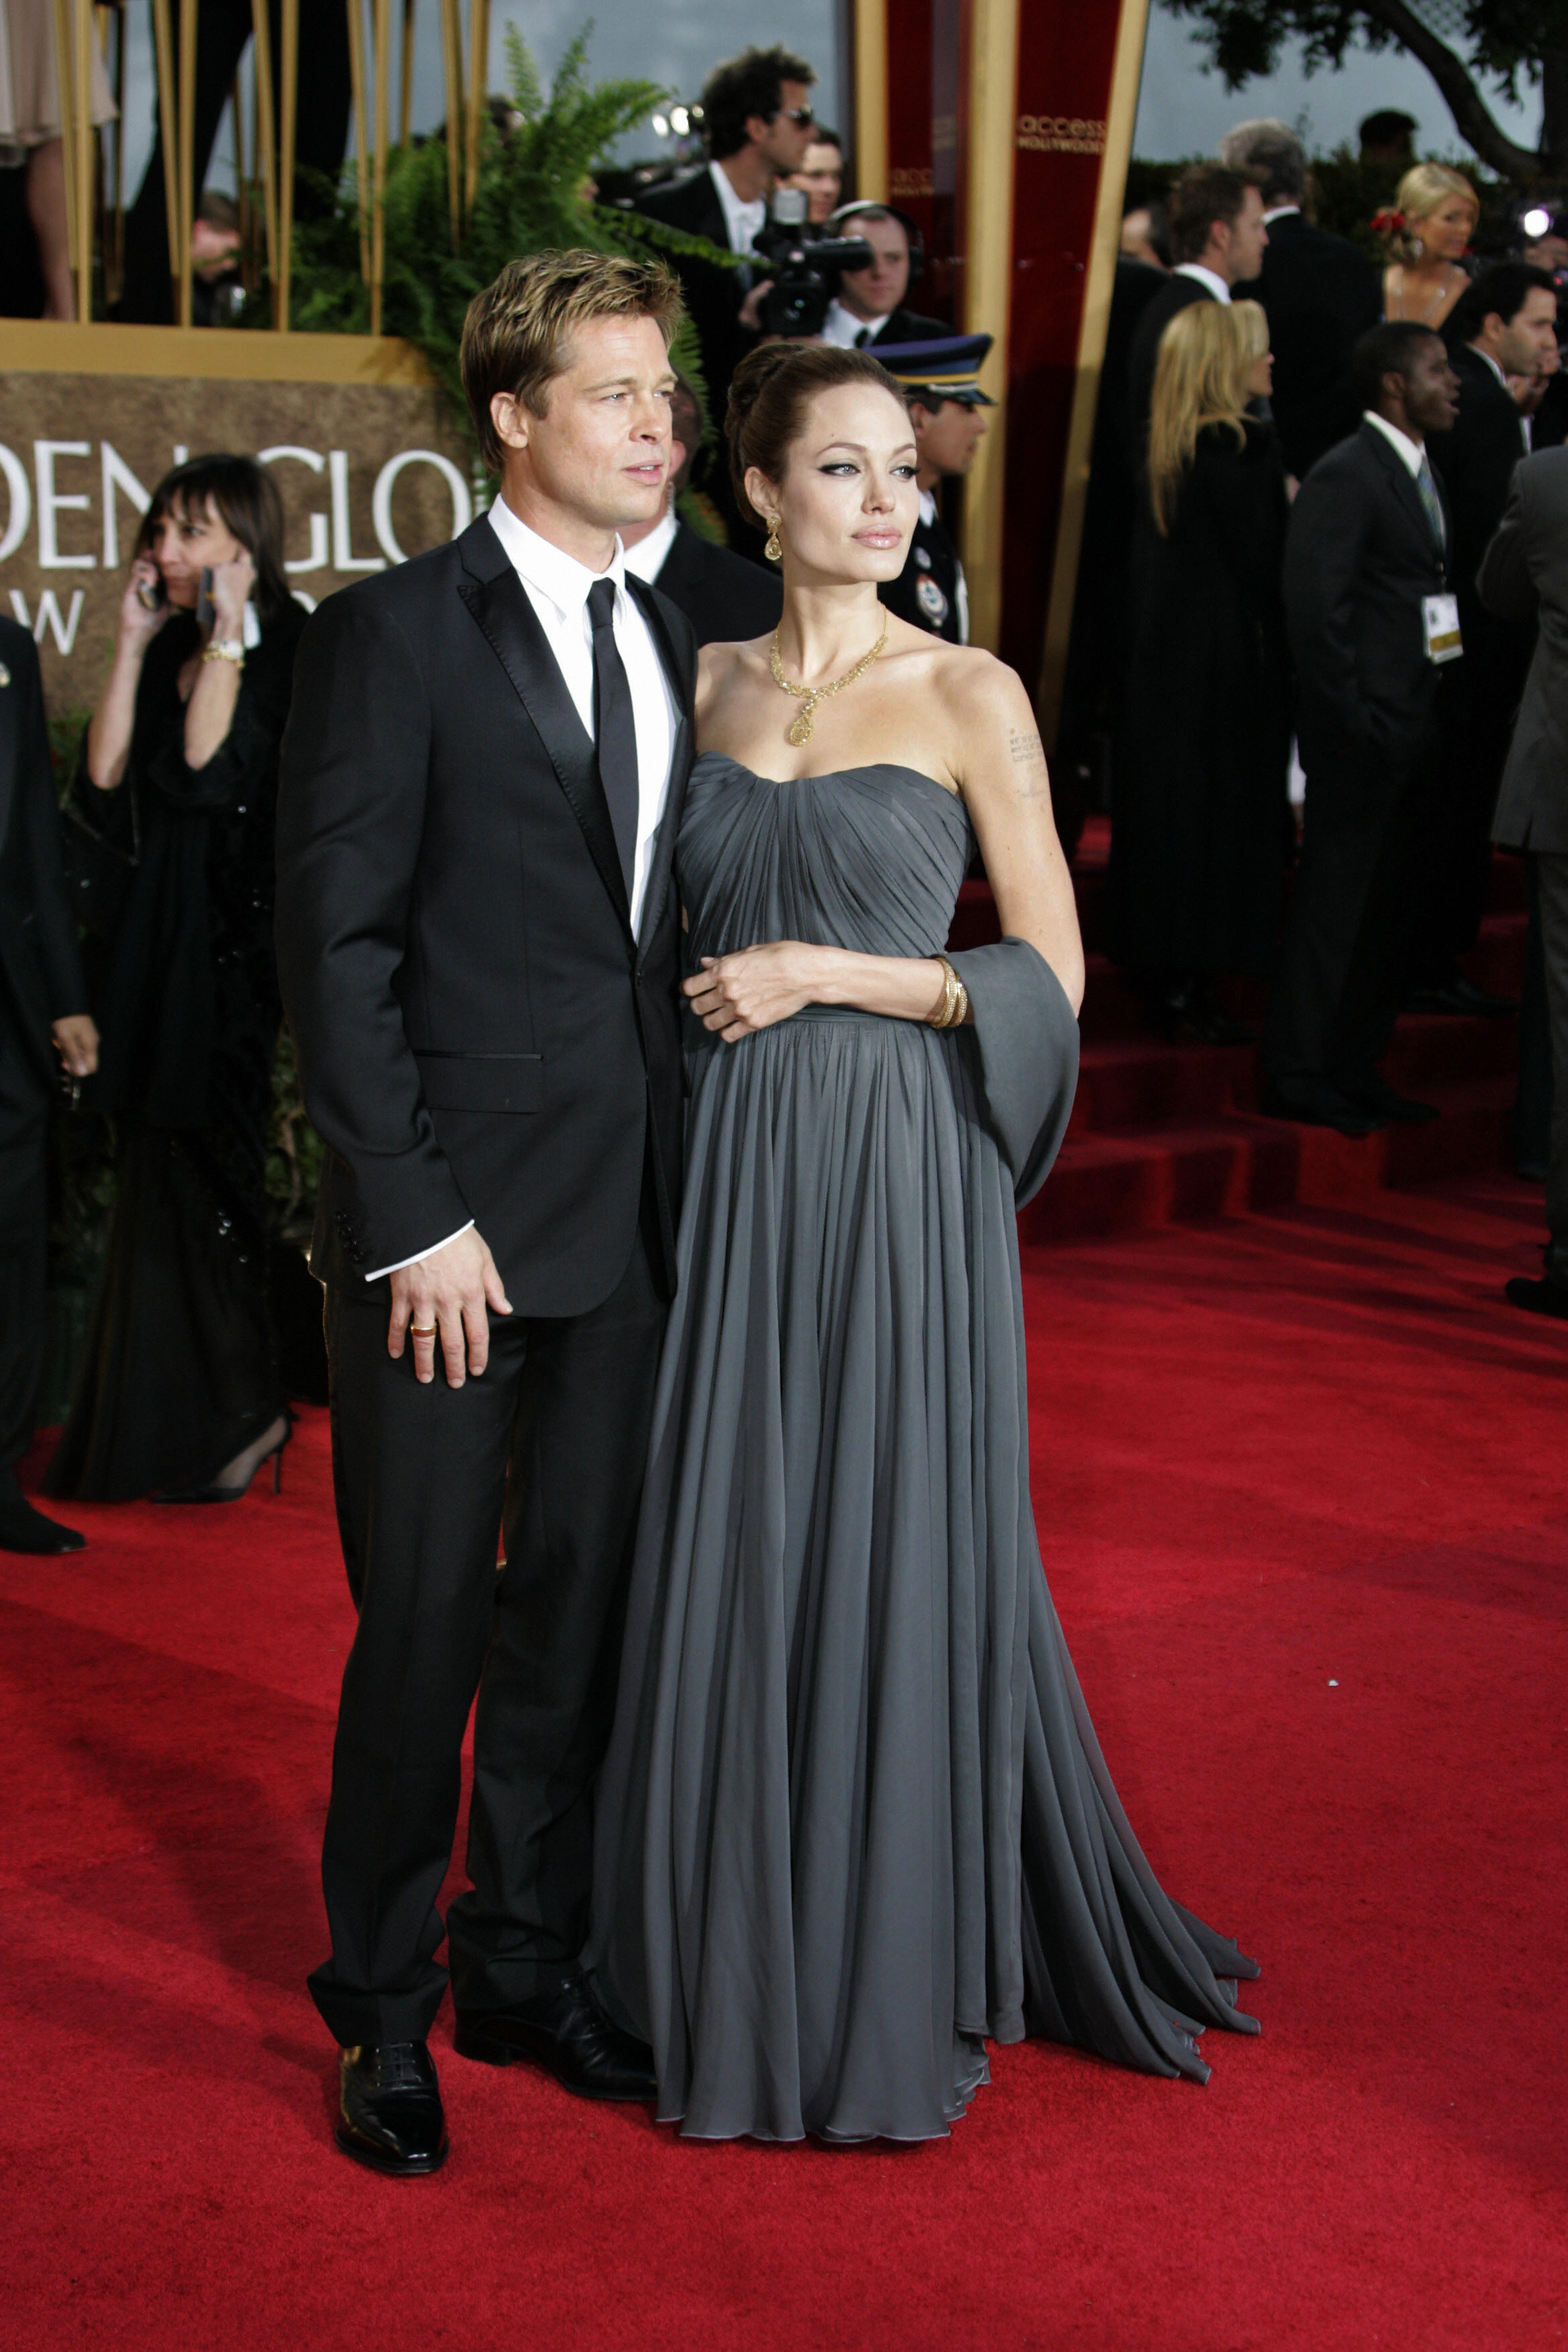 Angelina Jolie and Brad Pitt arrive 15 J